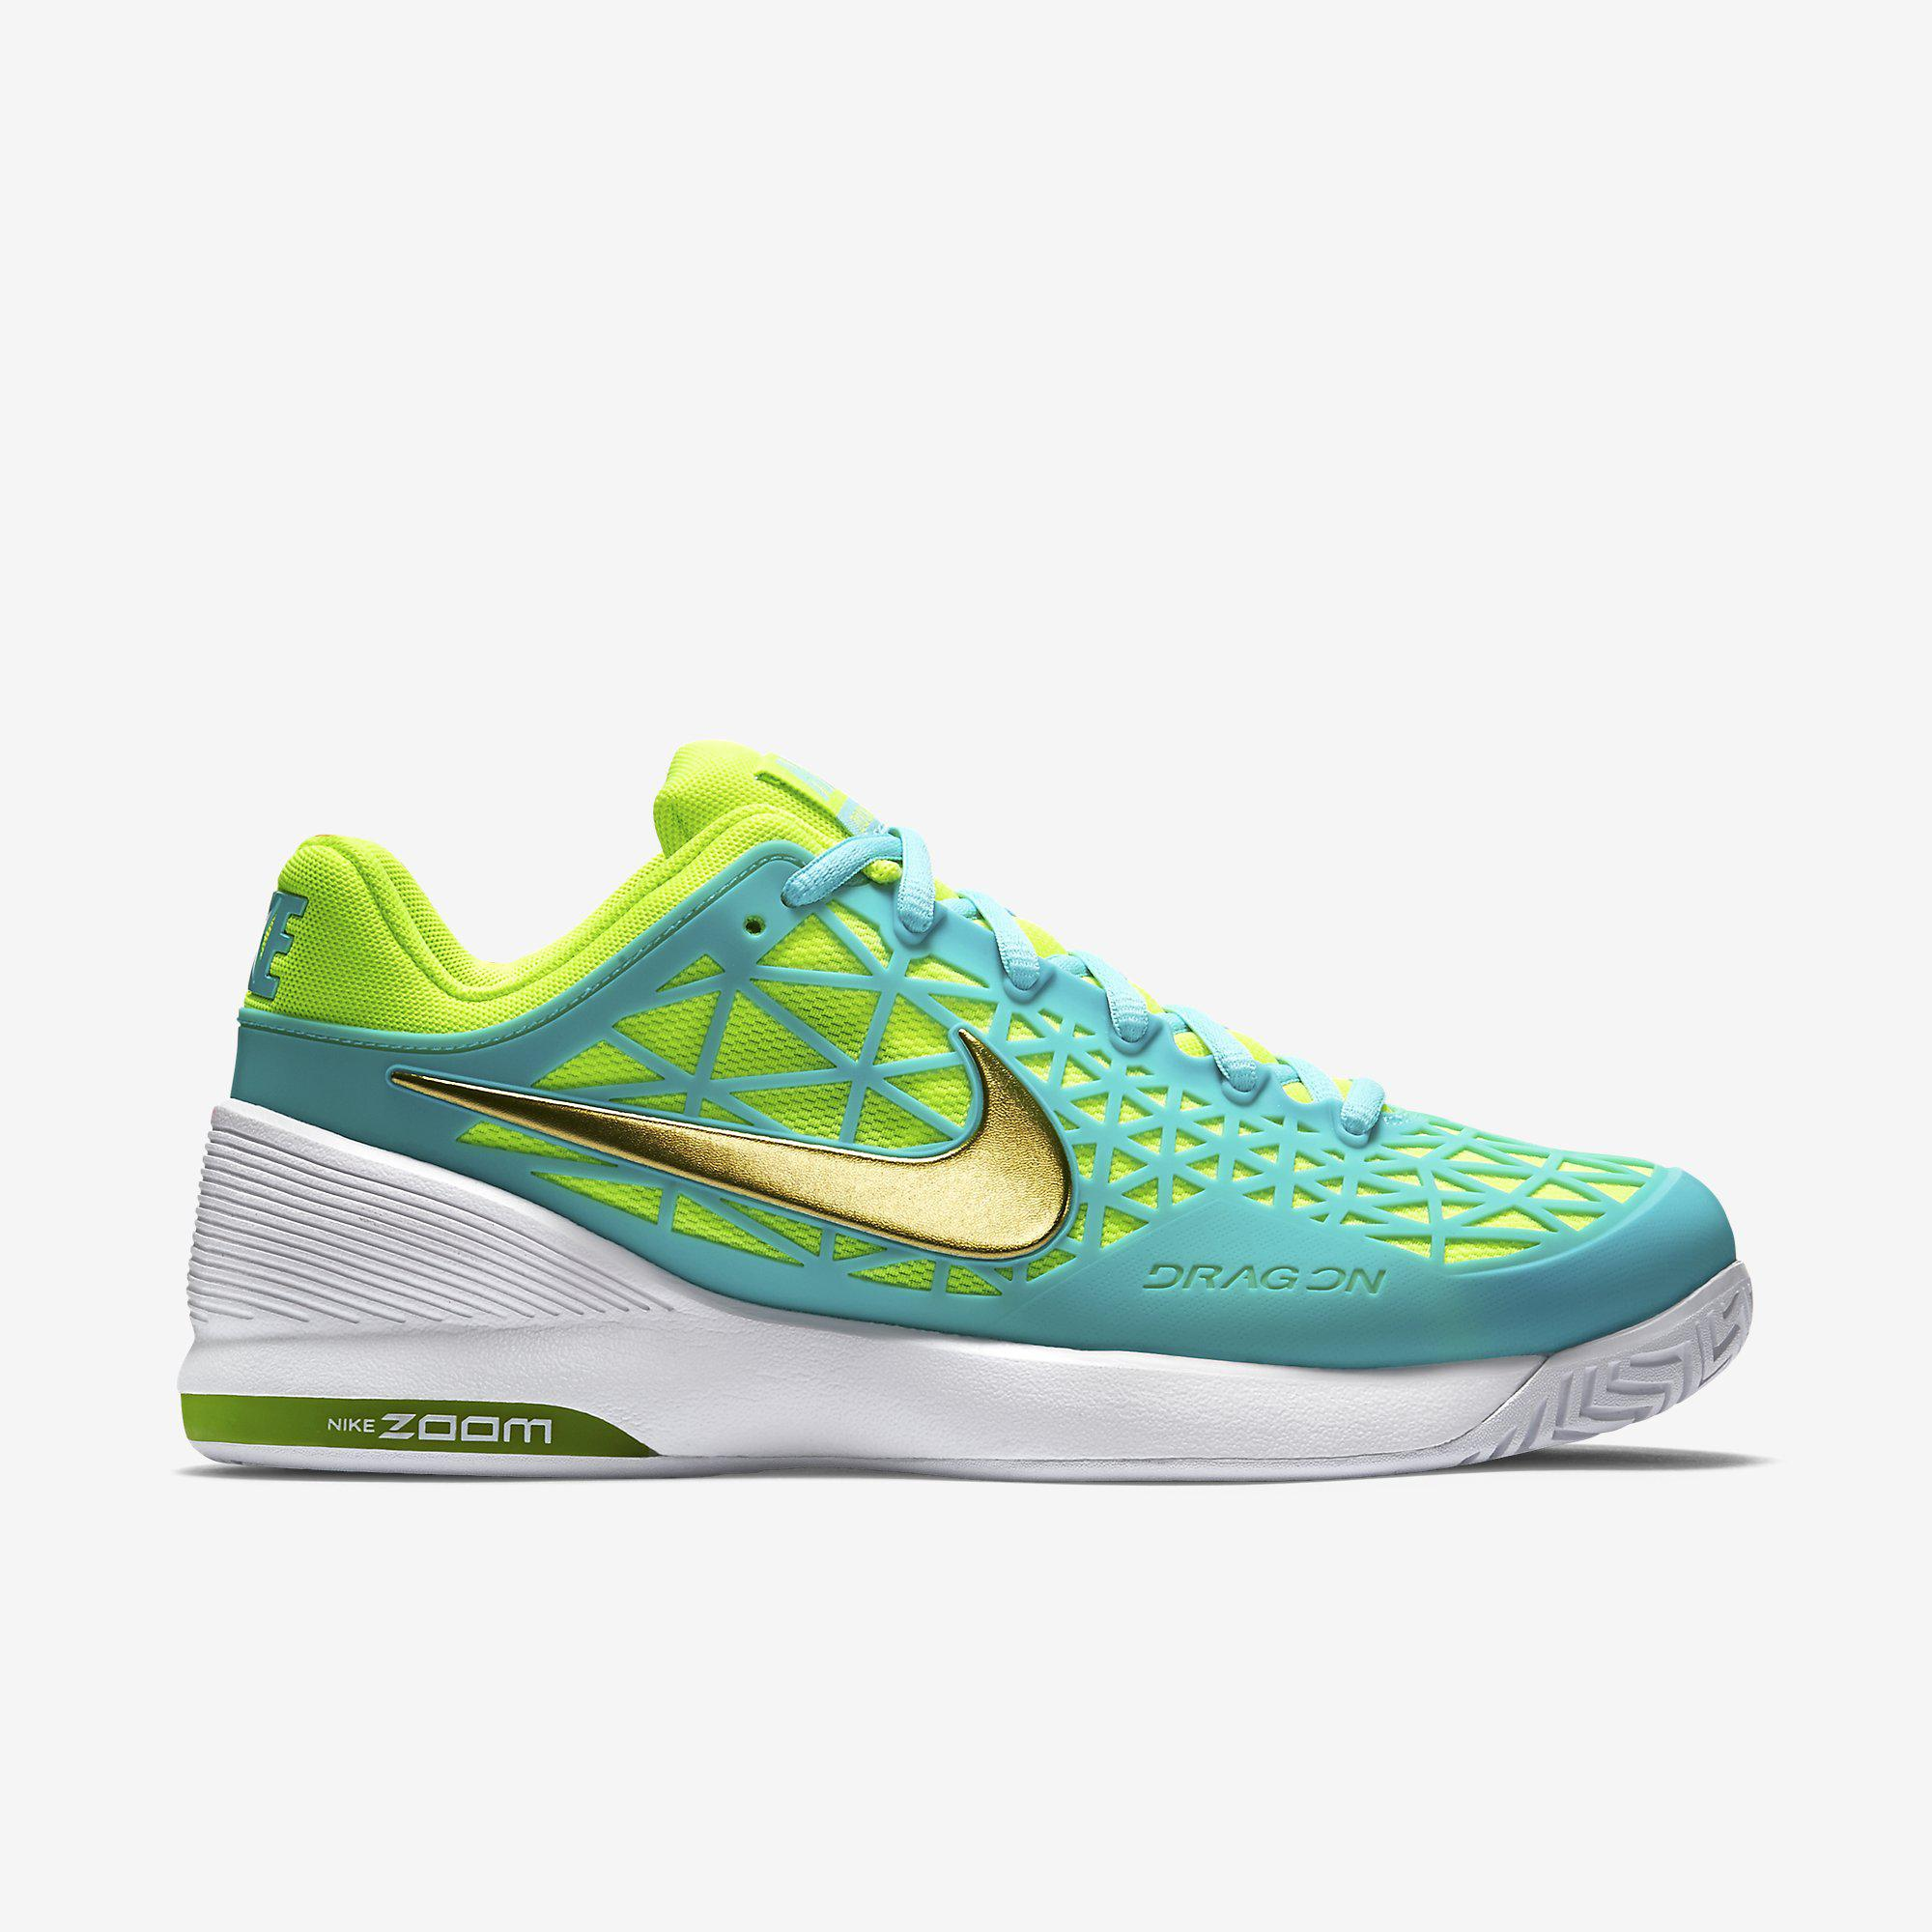 18a1a1f73c75 Nike Womens Zoom Cage 2 Tennis Shoes - Light Aqua White - Tennisnuts.com